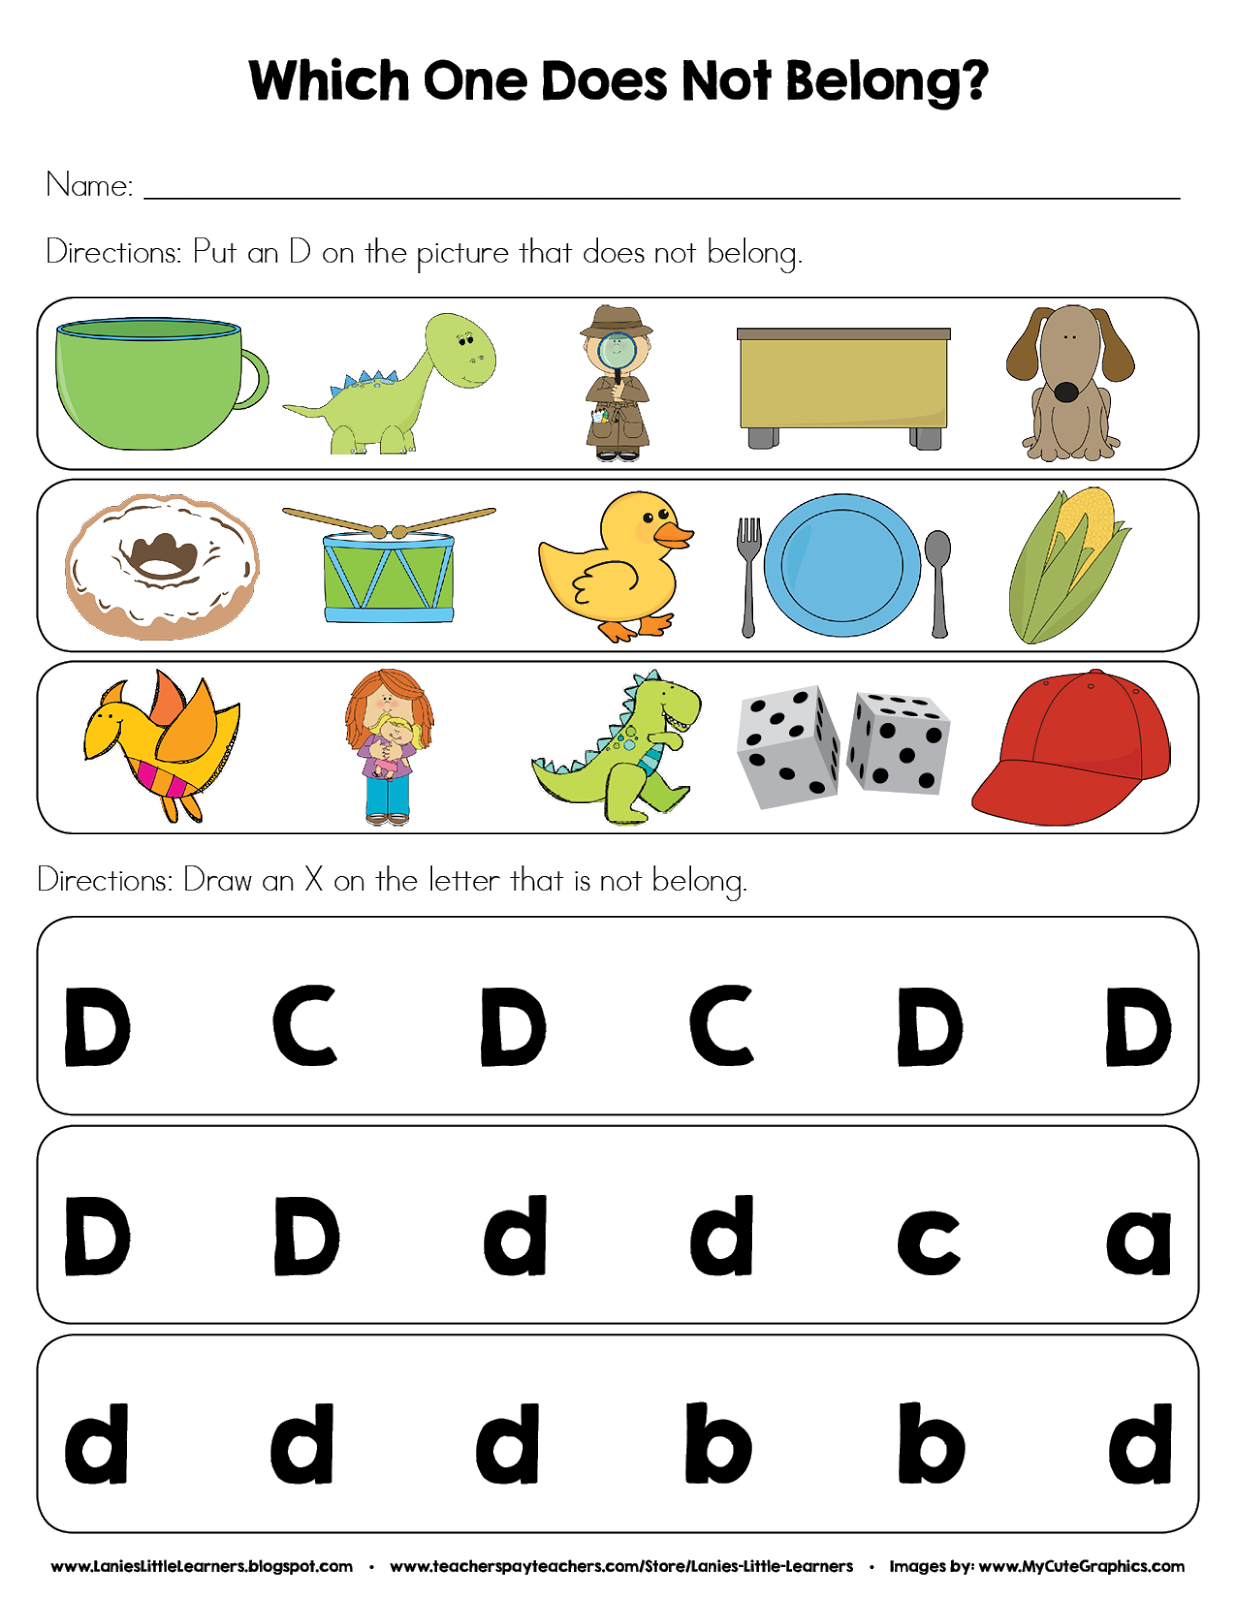 DOWNLOAD FREEBIE>> Which One Does Not Belong? (Letter D) Worksheet